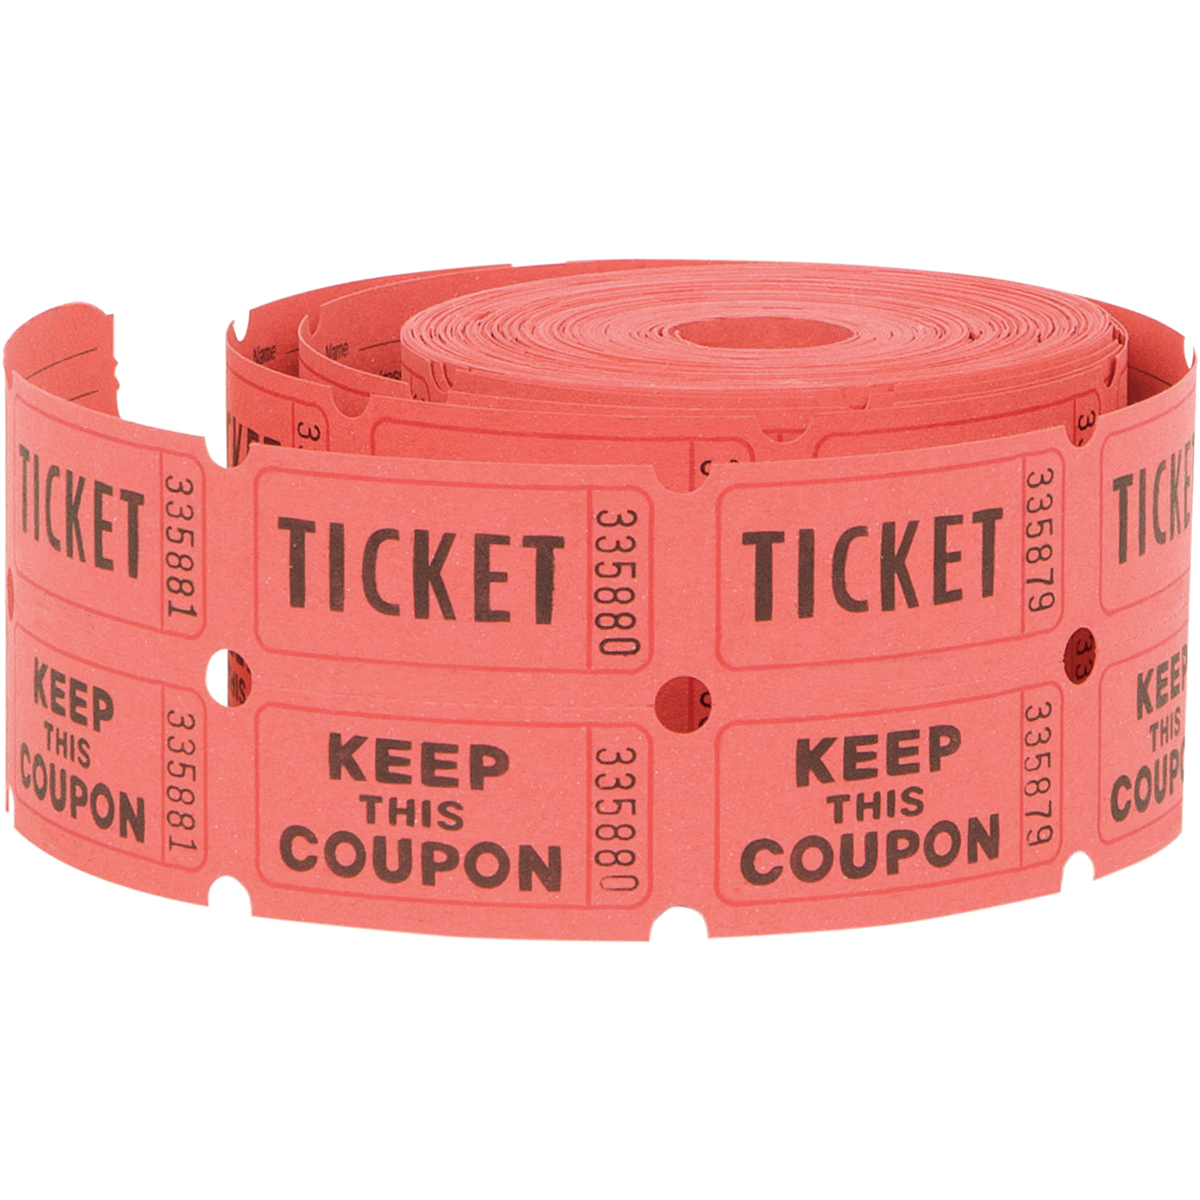 Admission & Raffle Tickets, Assorted, 500ct